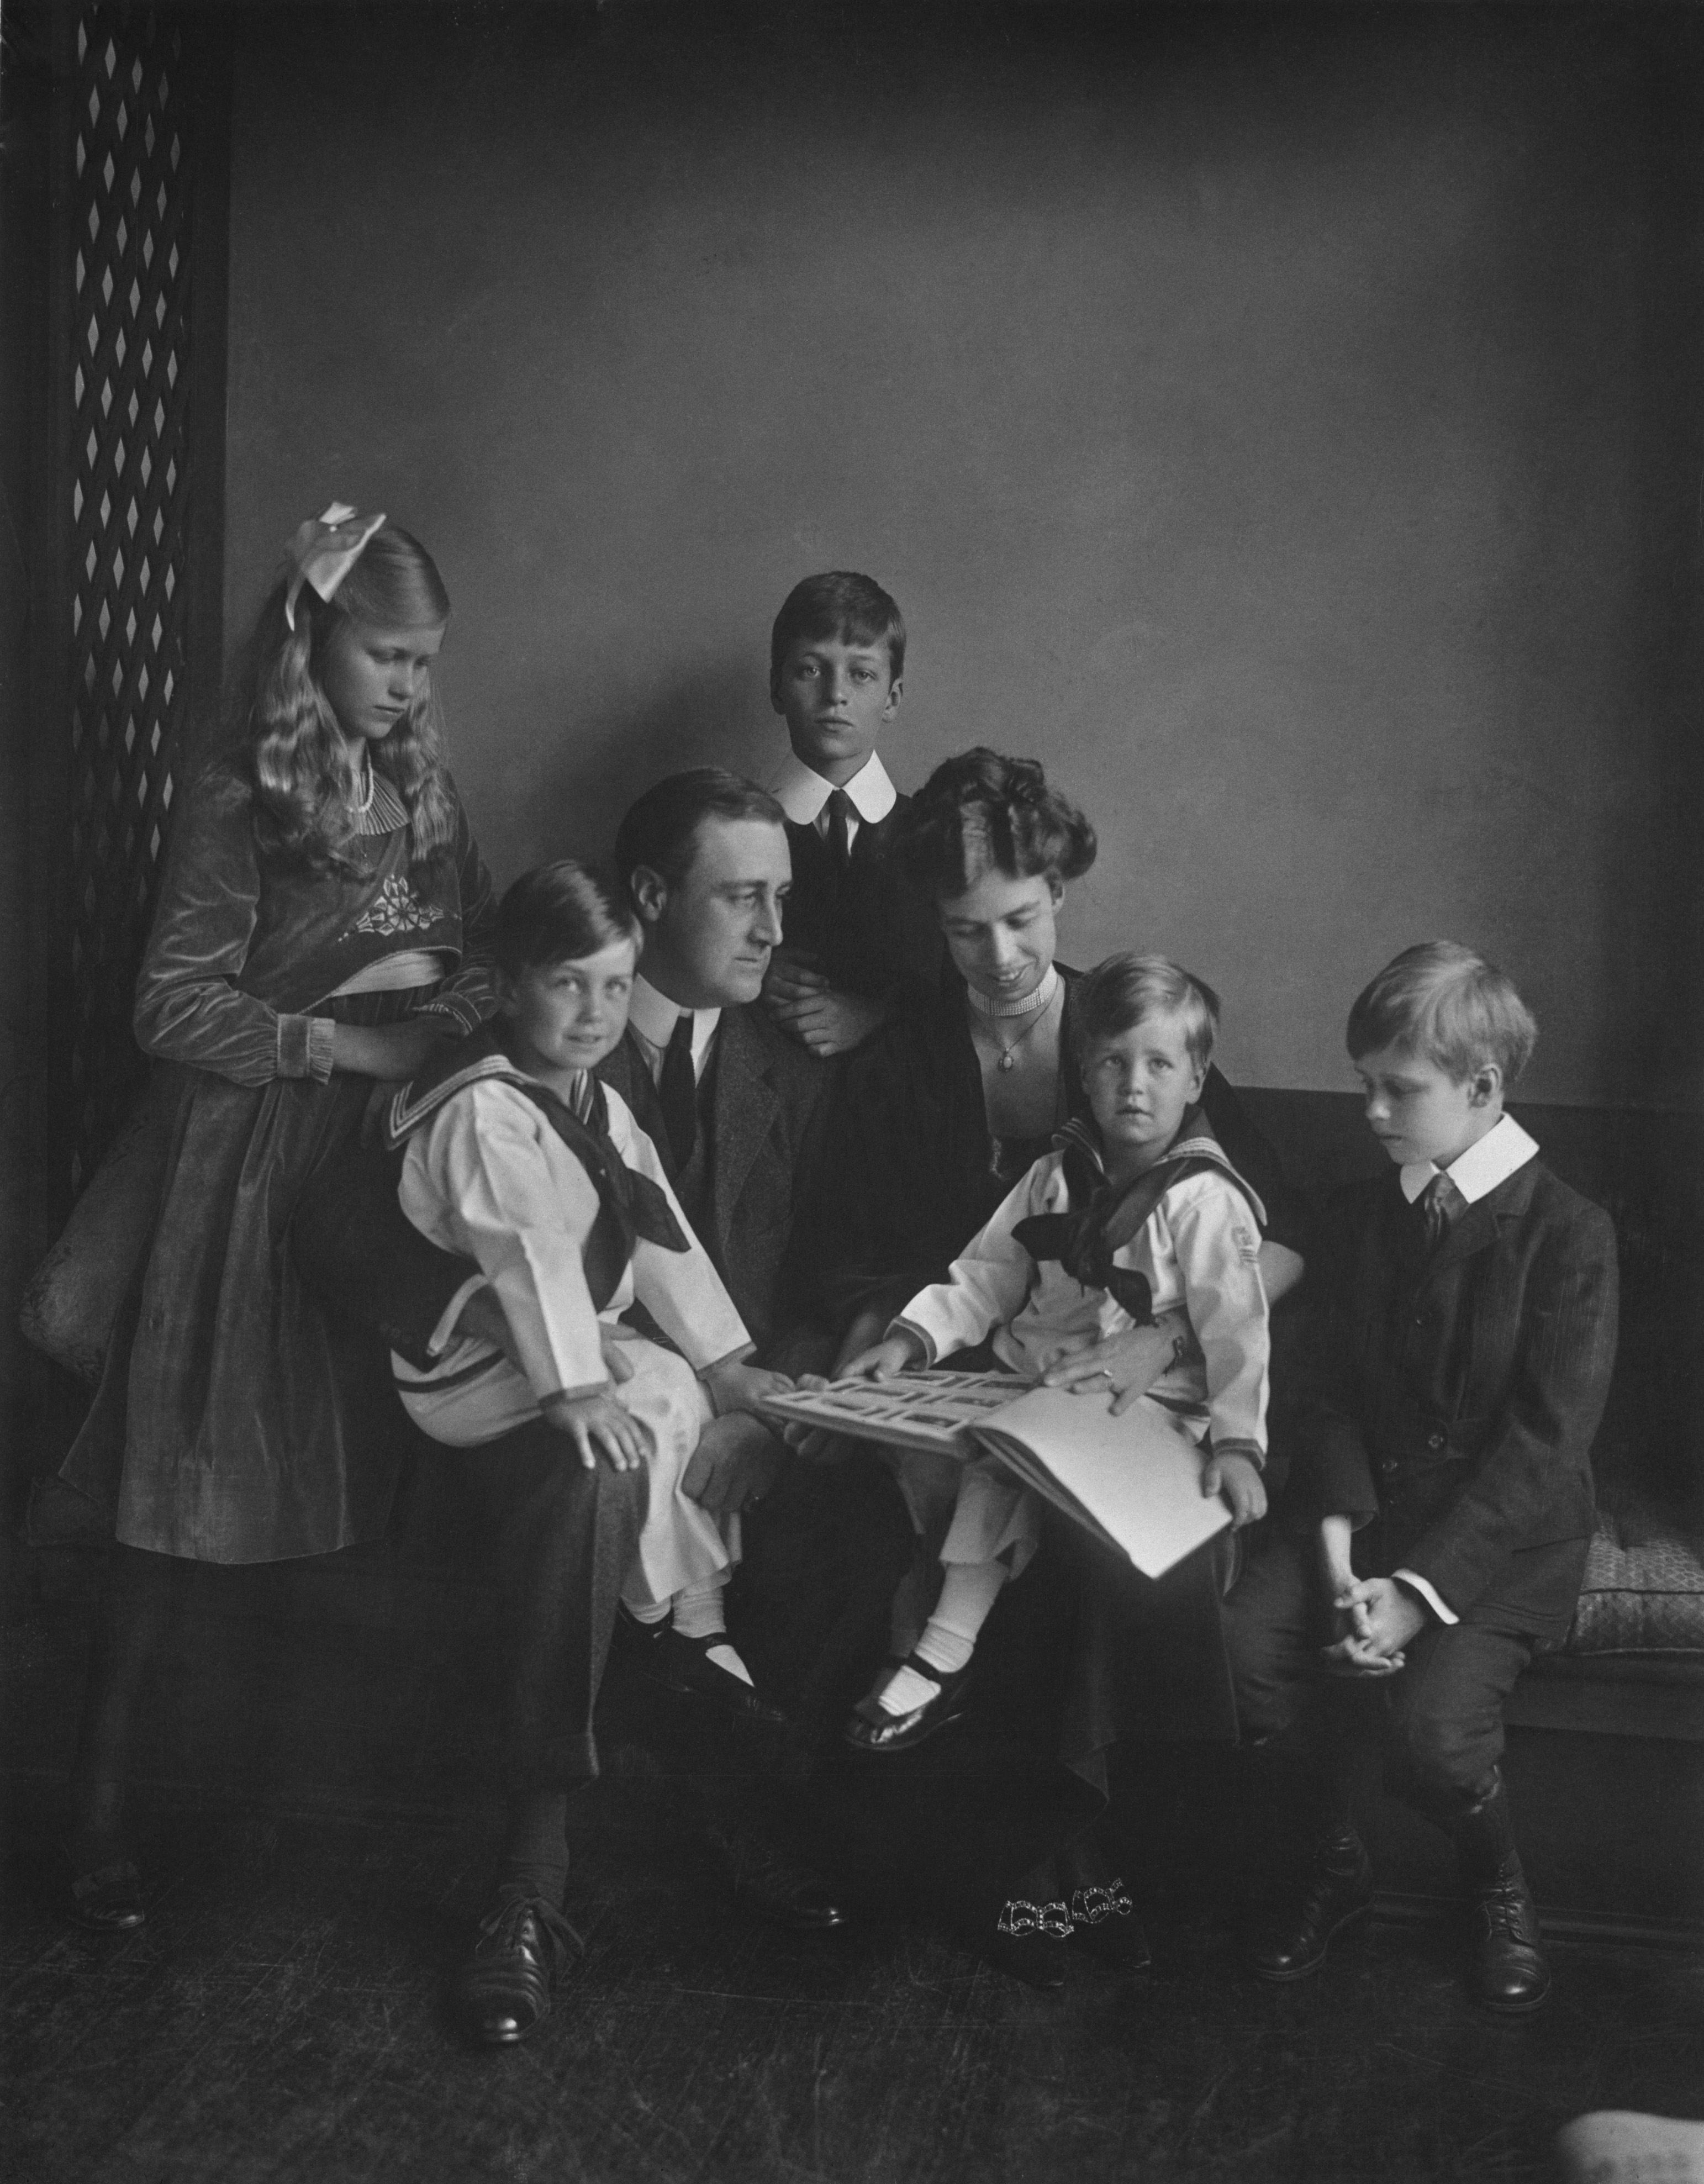 Ken Burns' next project for PBS will be a documentary on the Roosevelts, including Franklin and Eleanor, seen here with their children in June 1919.